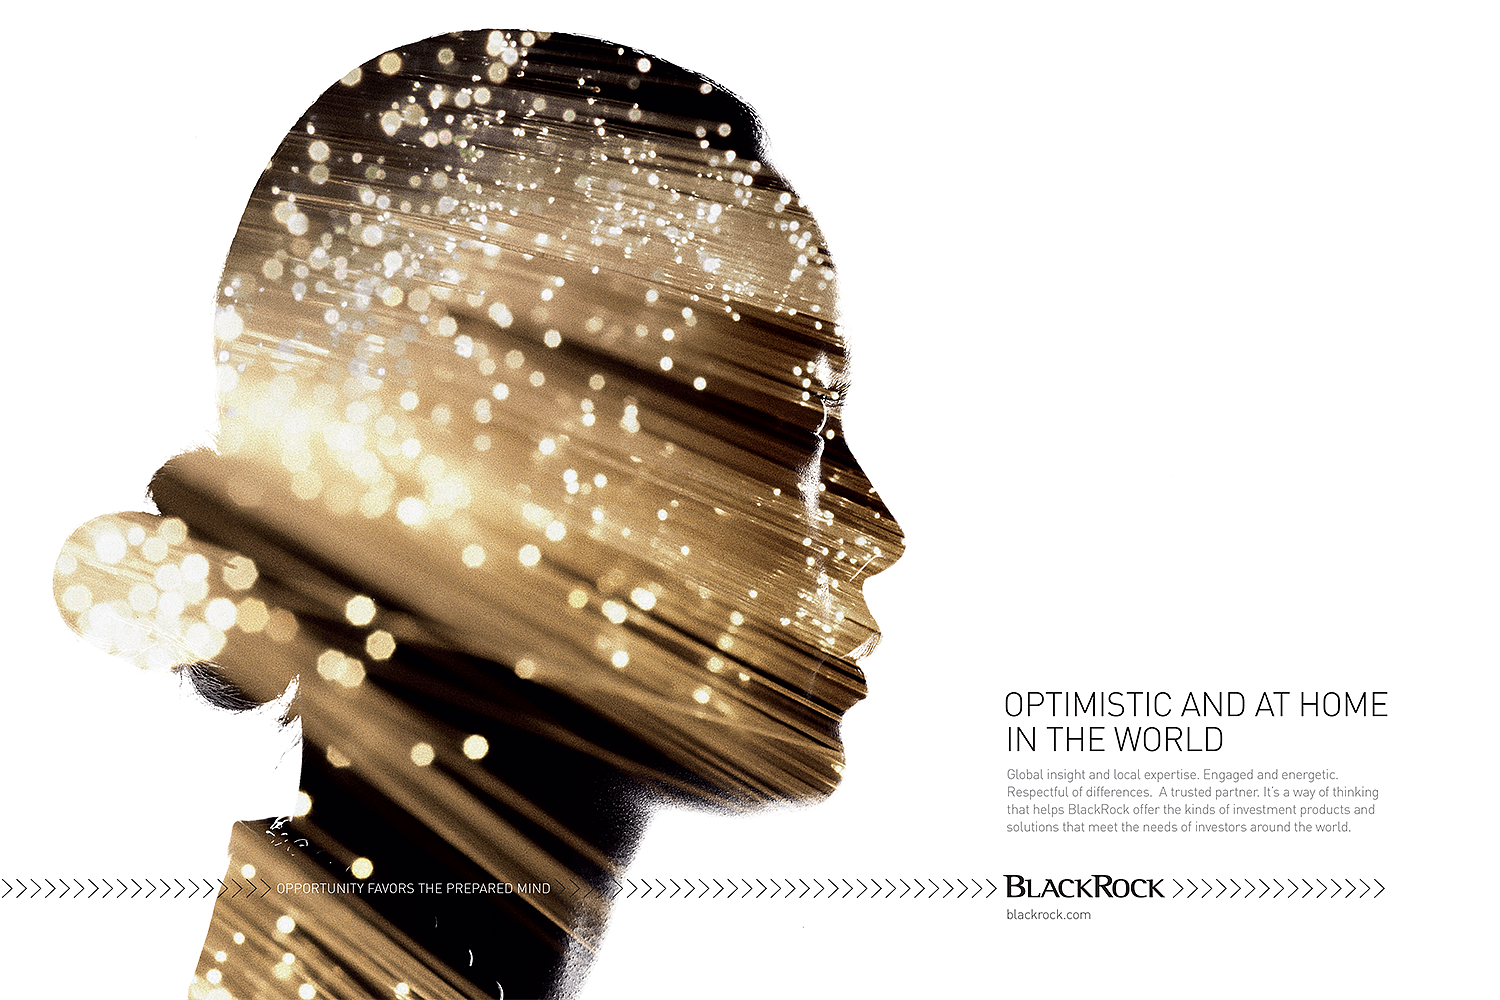 BlackRock_ads (high rez) 4#01 copy.png